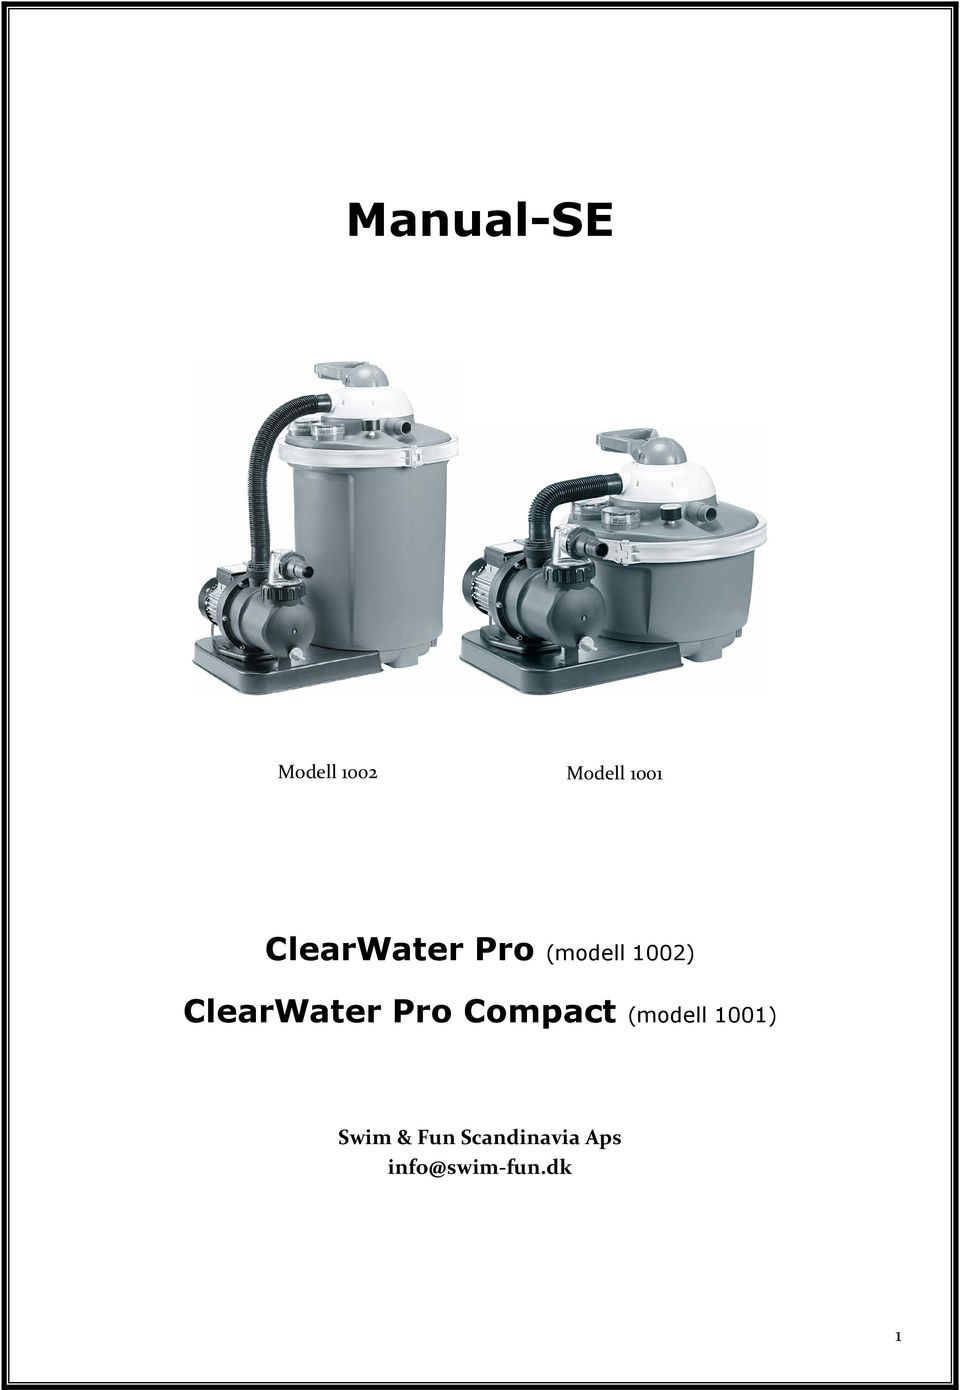 ClearWater Pro Compact (modell 1001)